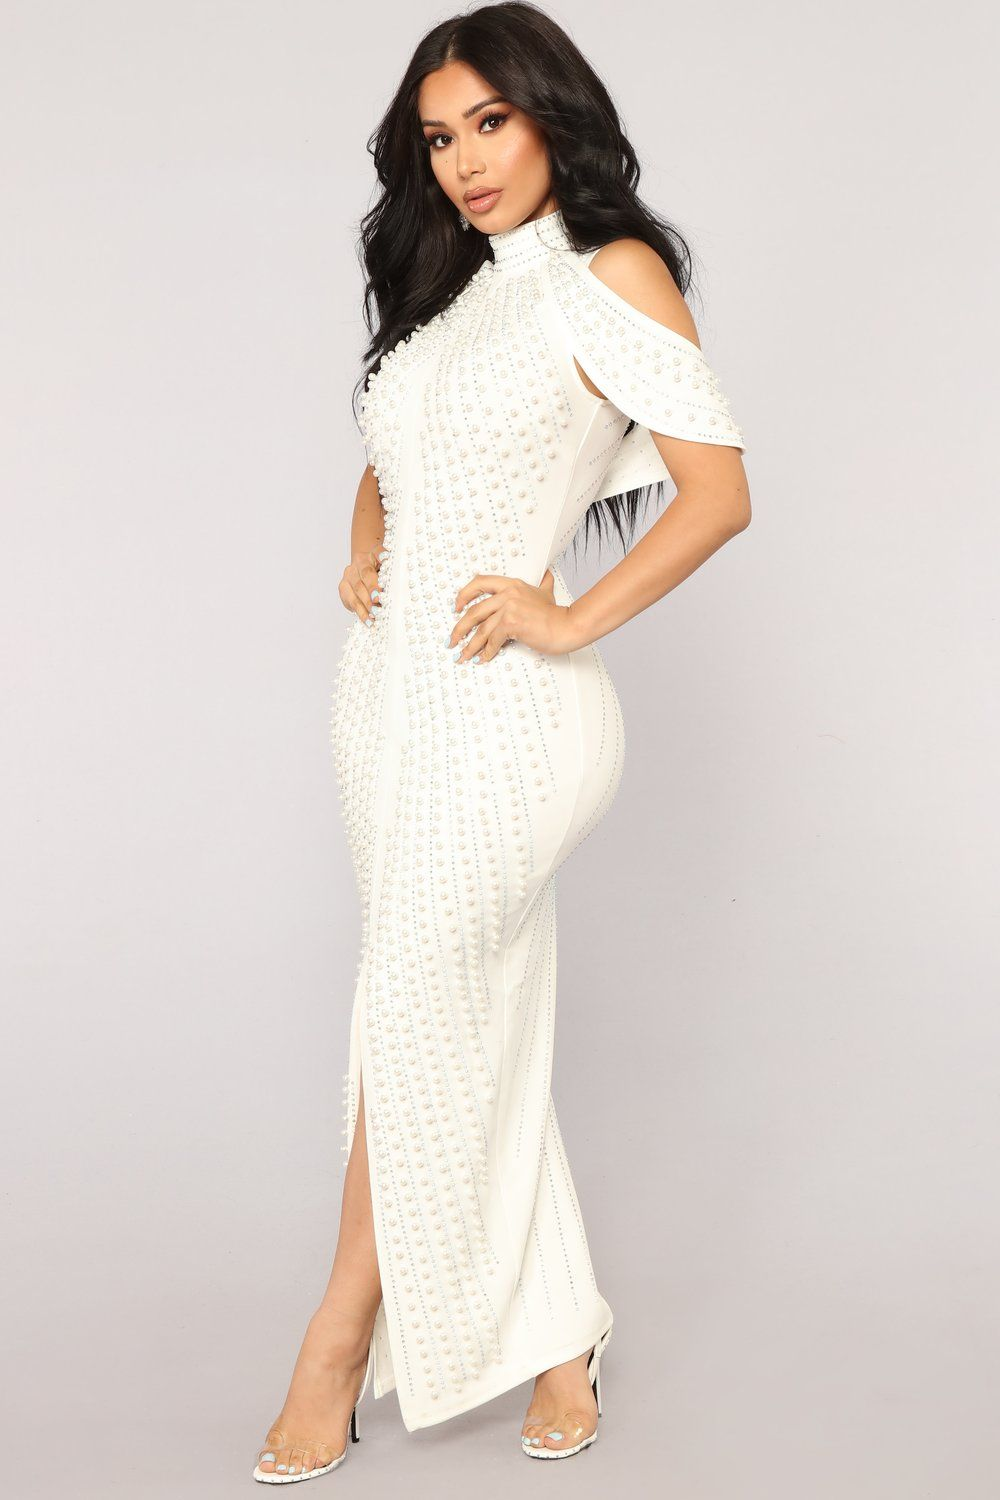 6b74443d1648f Look Beyond The Pearls Dress - White Fashion Nova White Dress, Women's Fashion  Dresses,